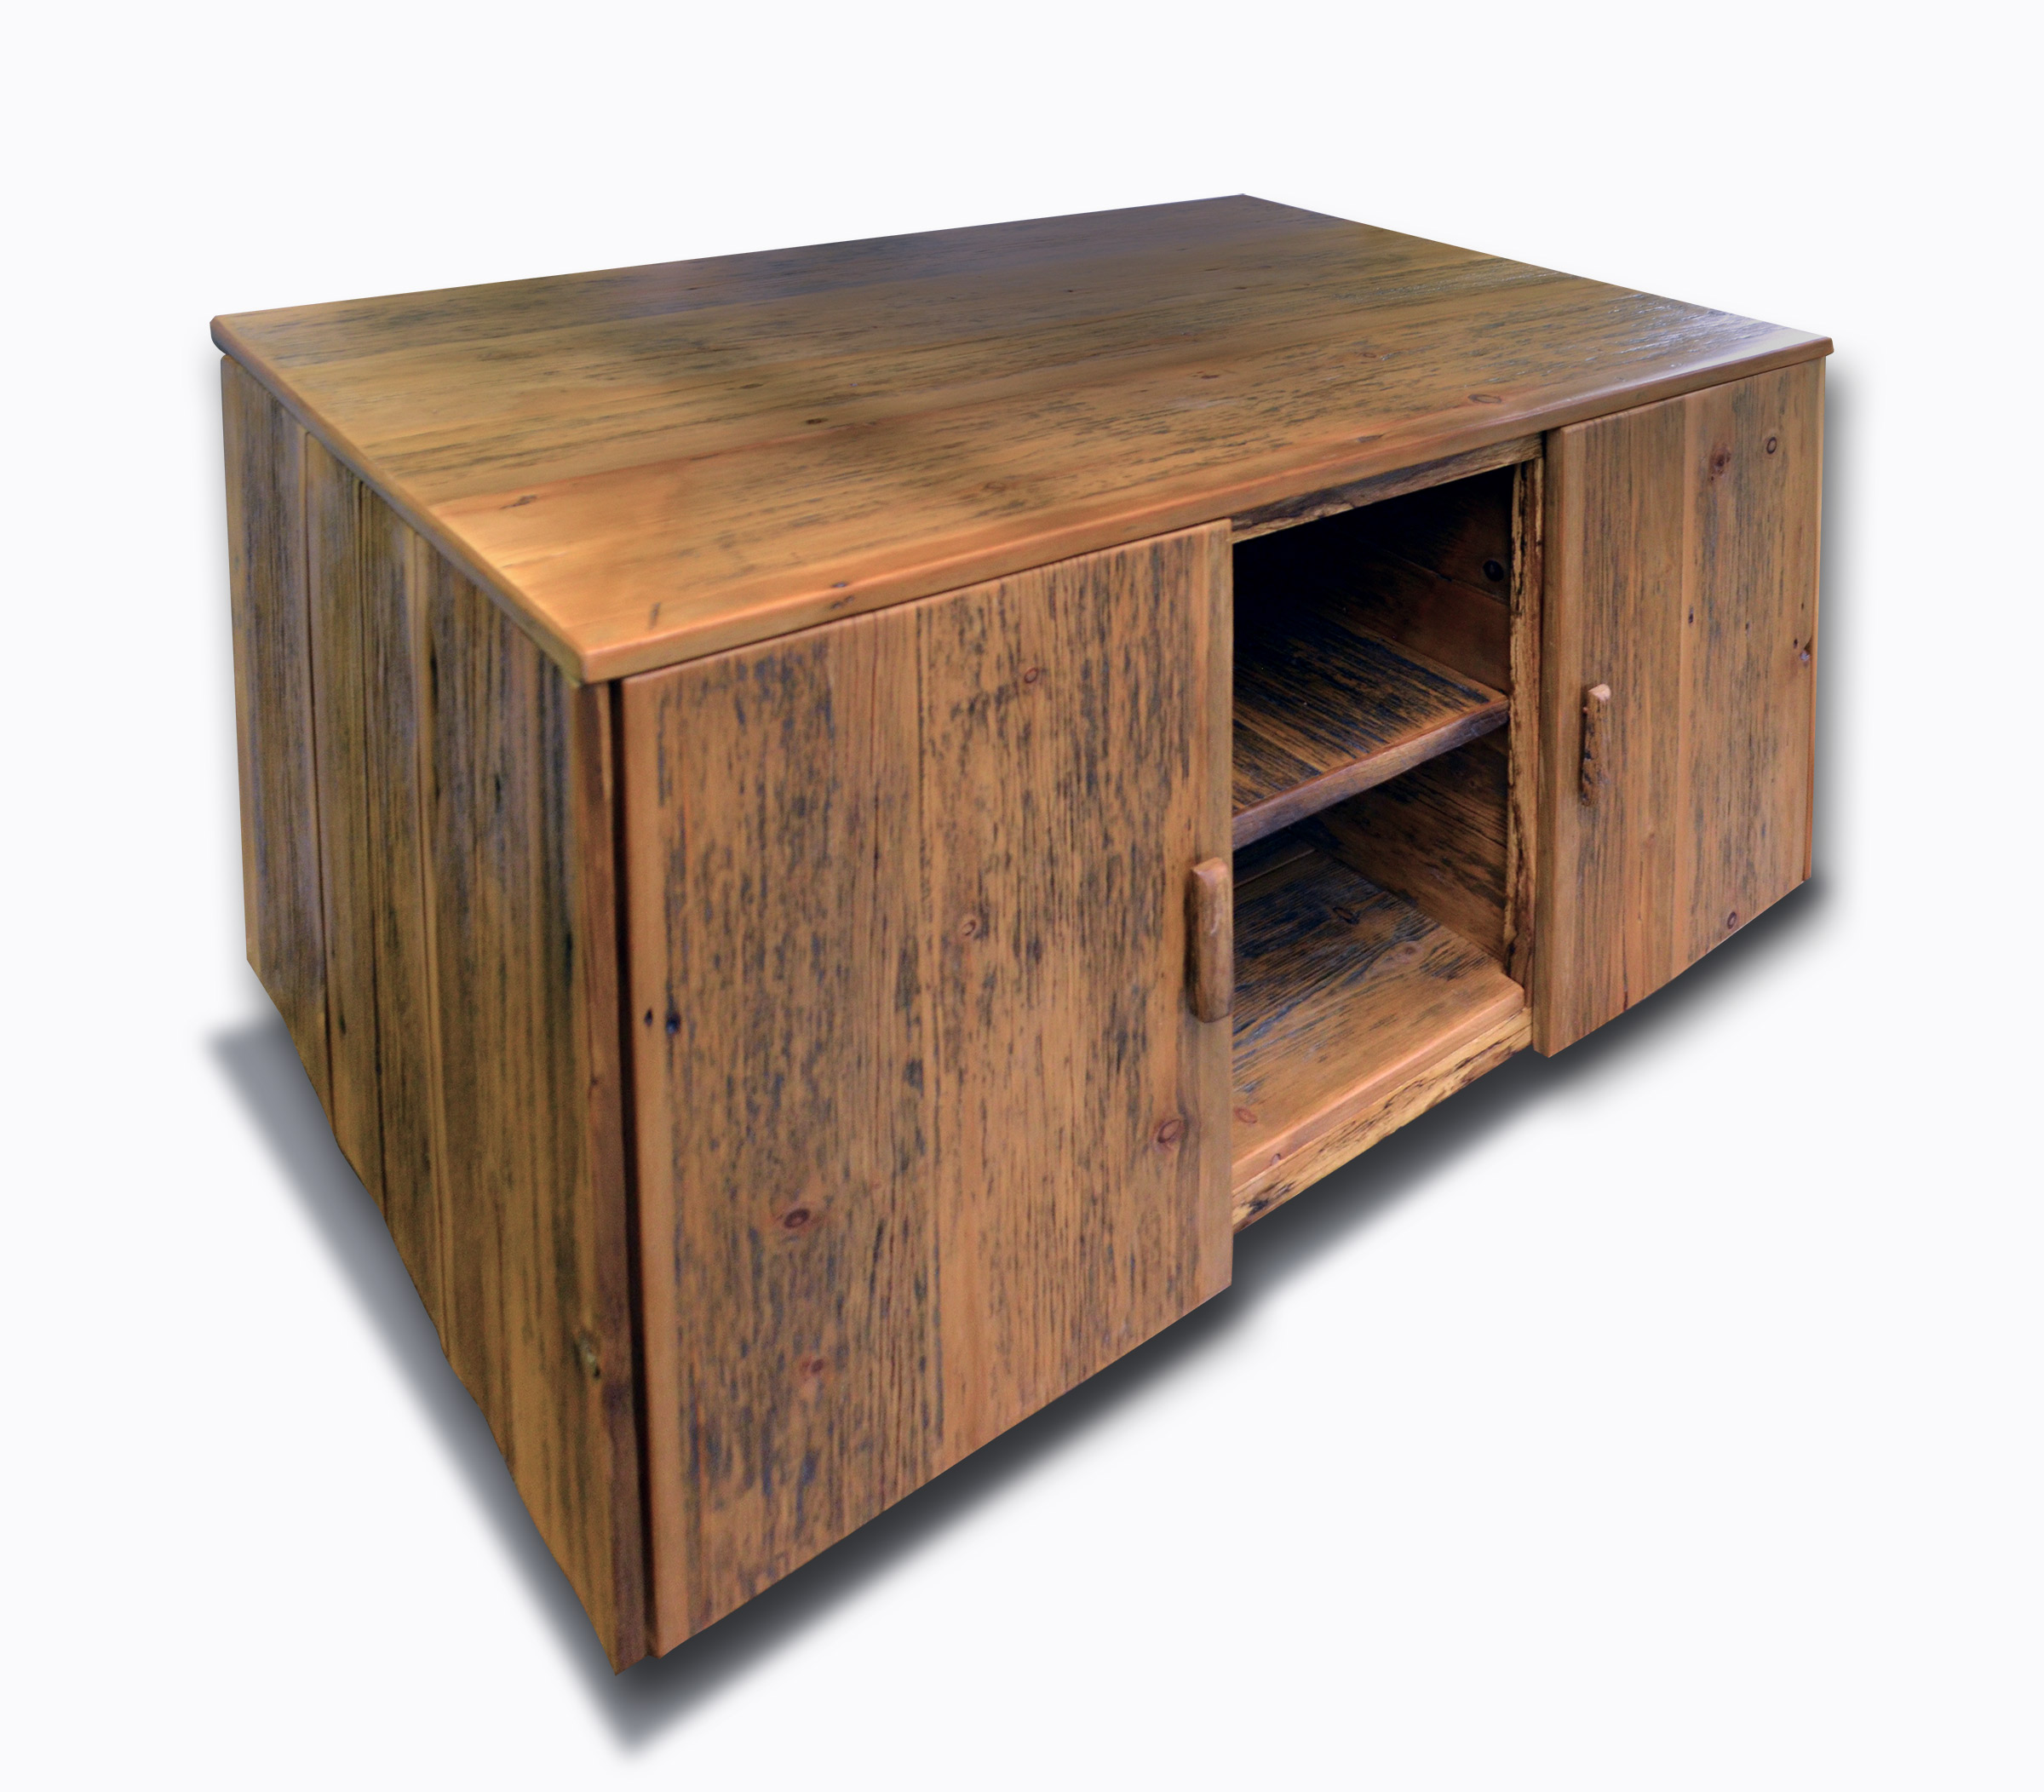 Reclaimed Media Cabinet Rustic Reclaimed Wood Media Cabinet Abodeacious